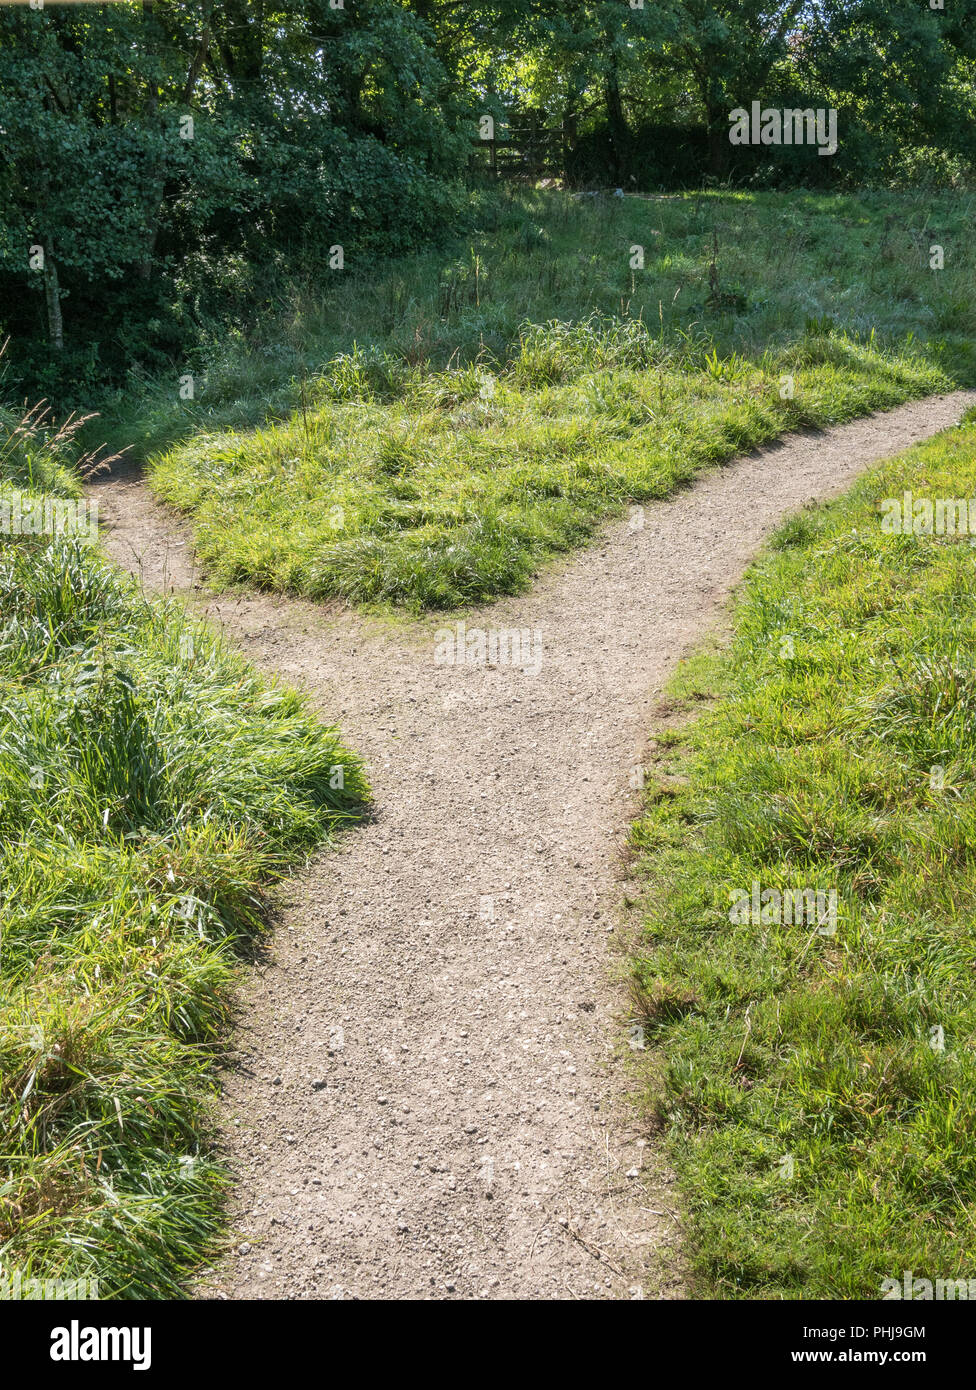 Small branching footpath - metaphor for changing direction, diverging paths, alternative route, career changes, splitting up, going separate ways. - Stock Image